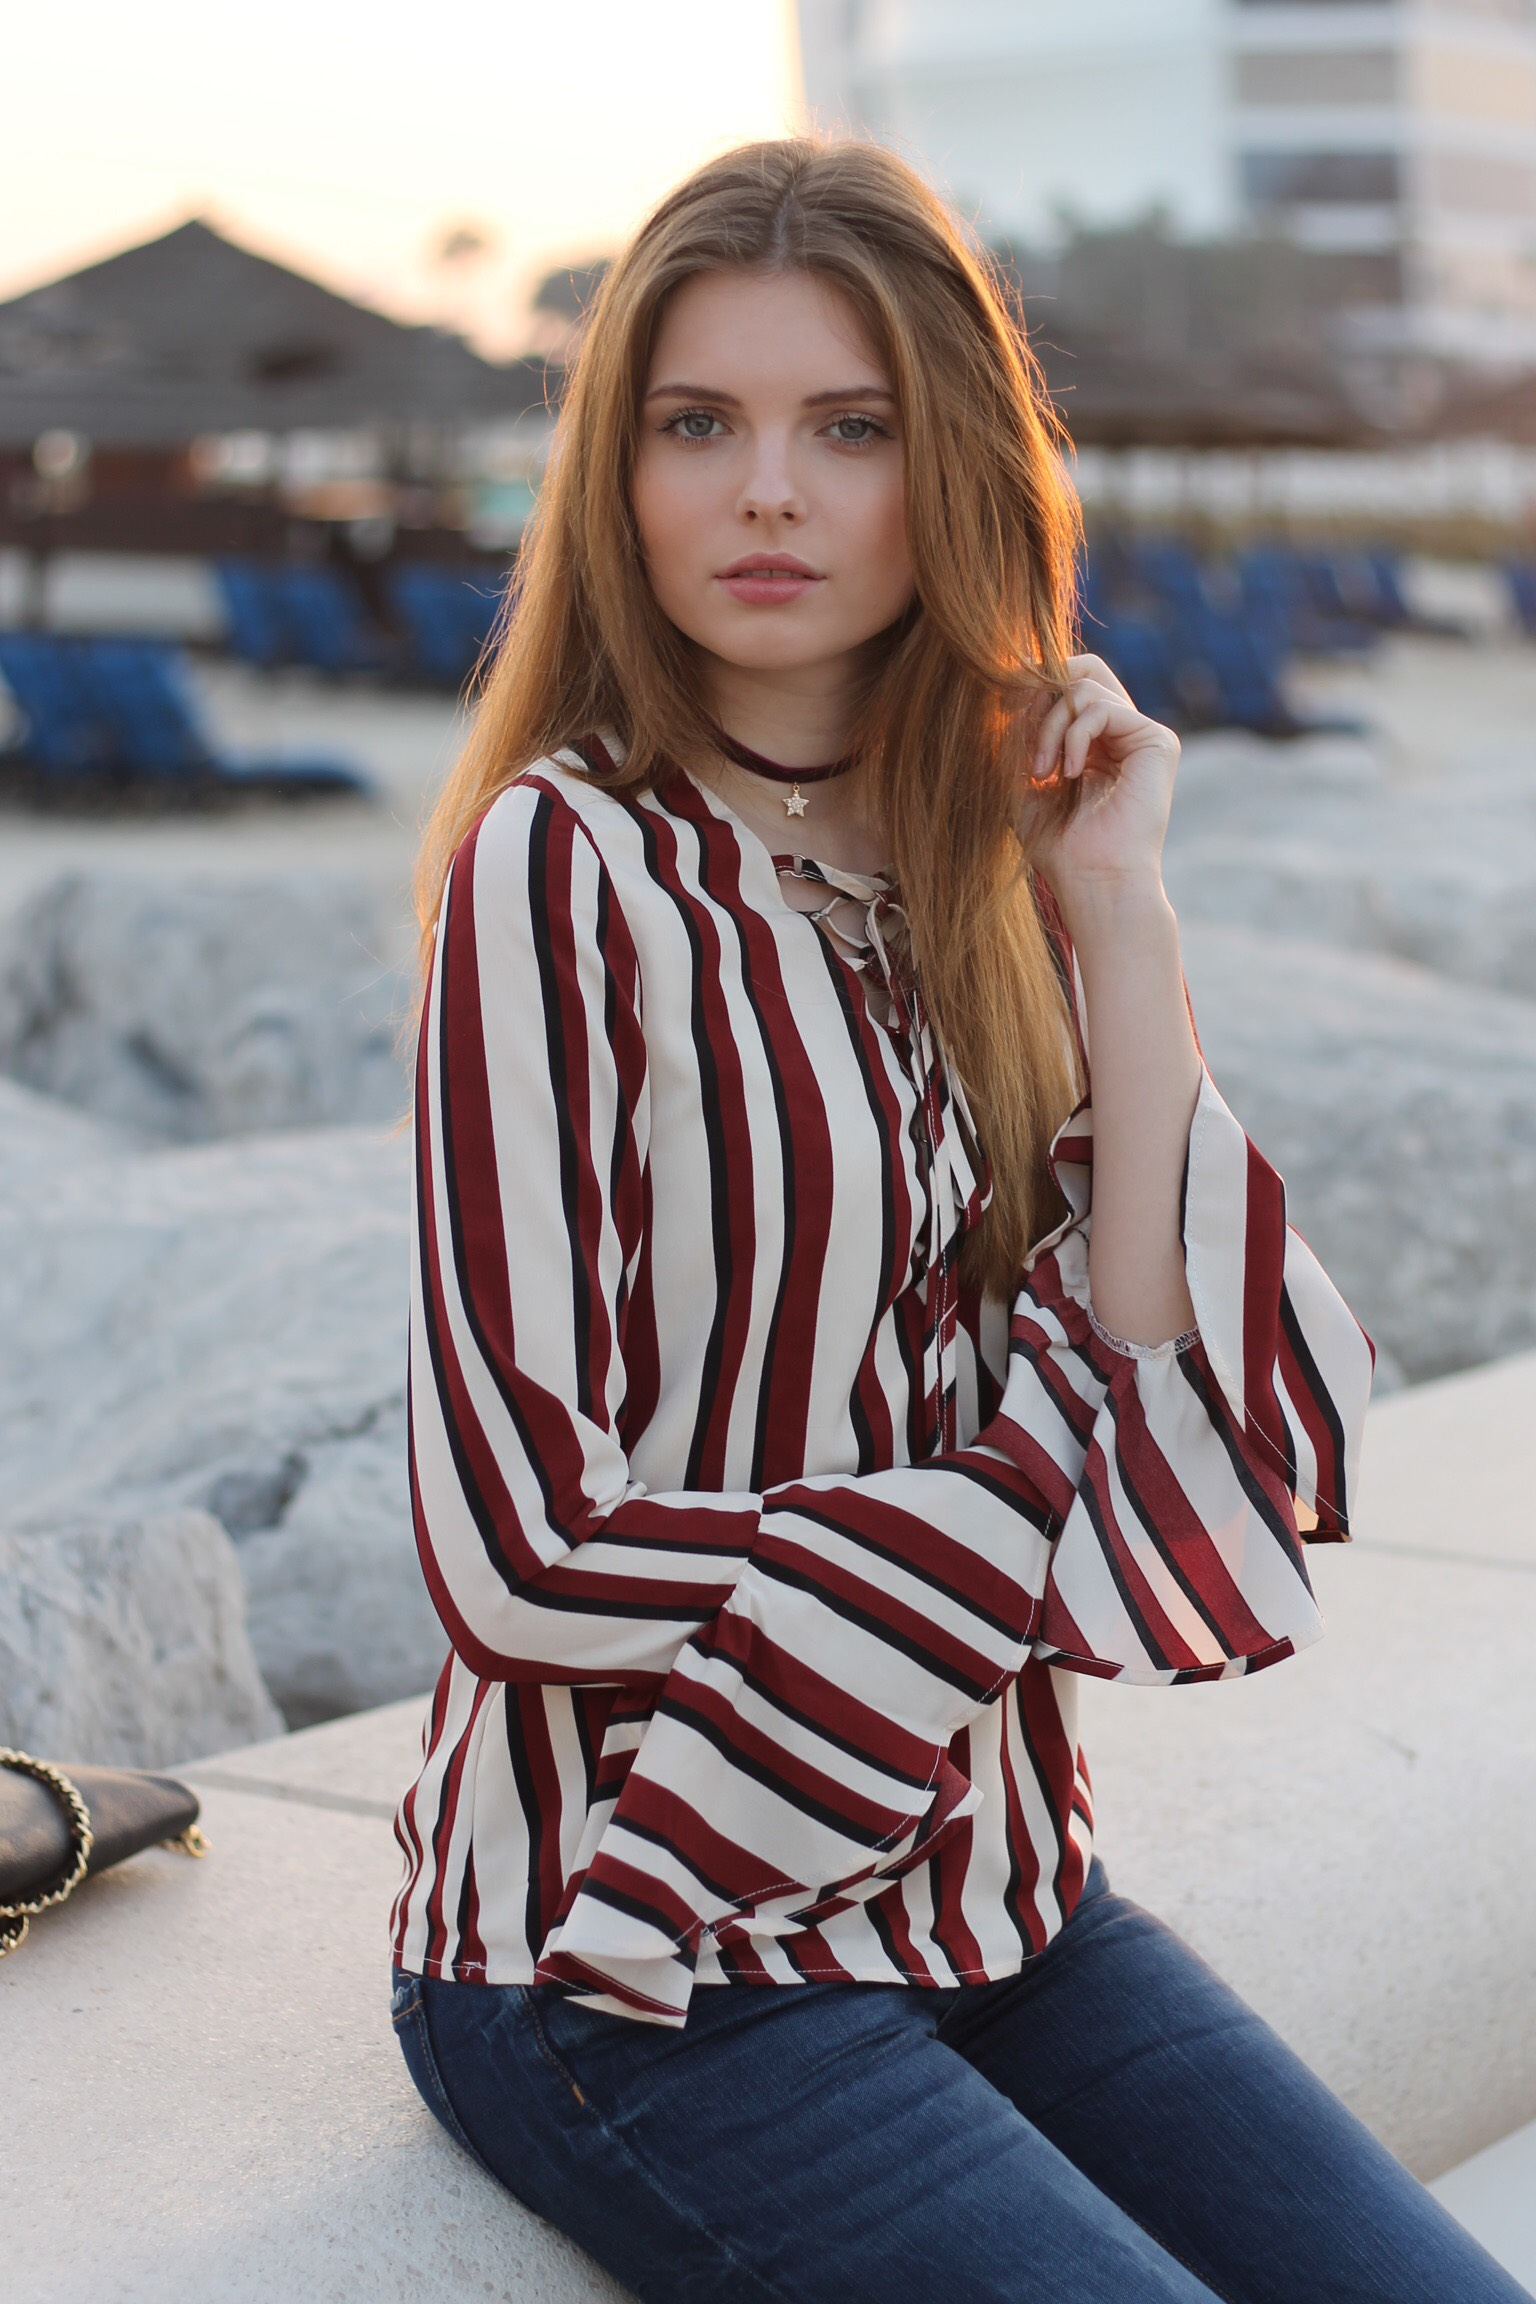 file12kopie - STRIPED BLOUSE OUTFIT IN DUBAI